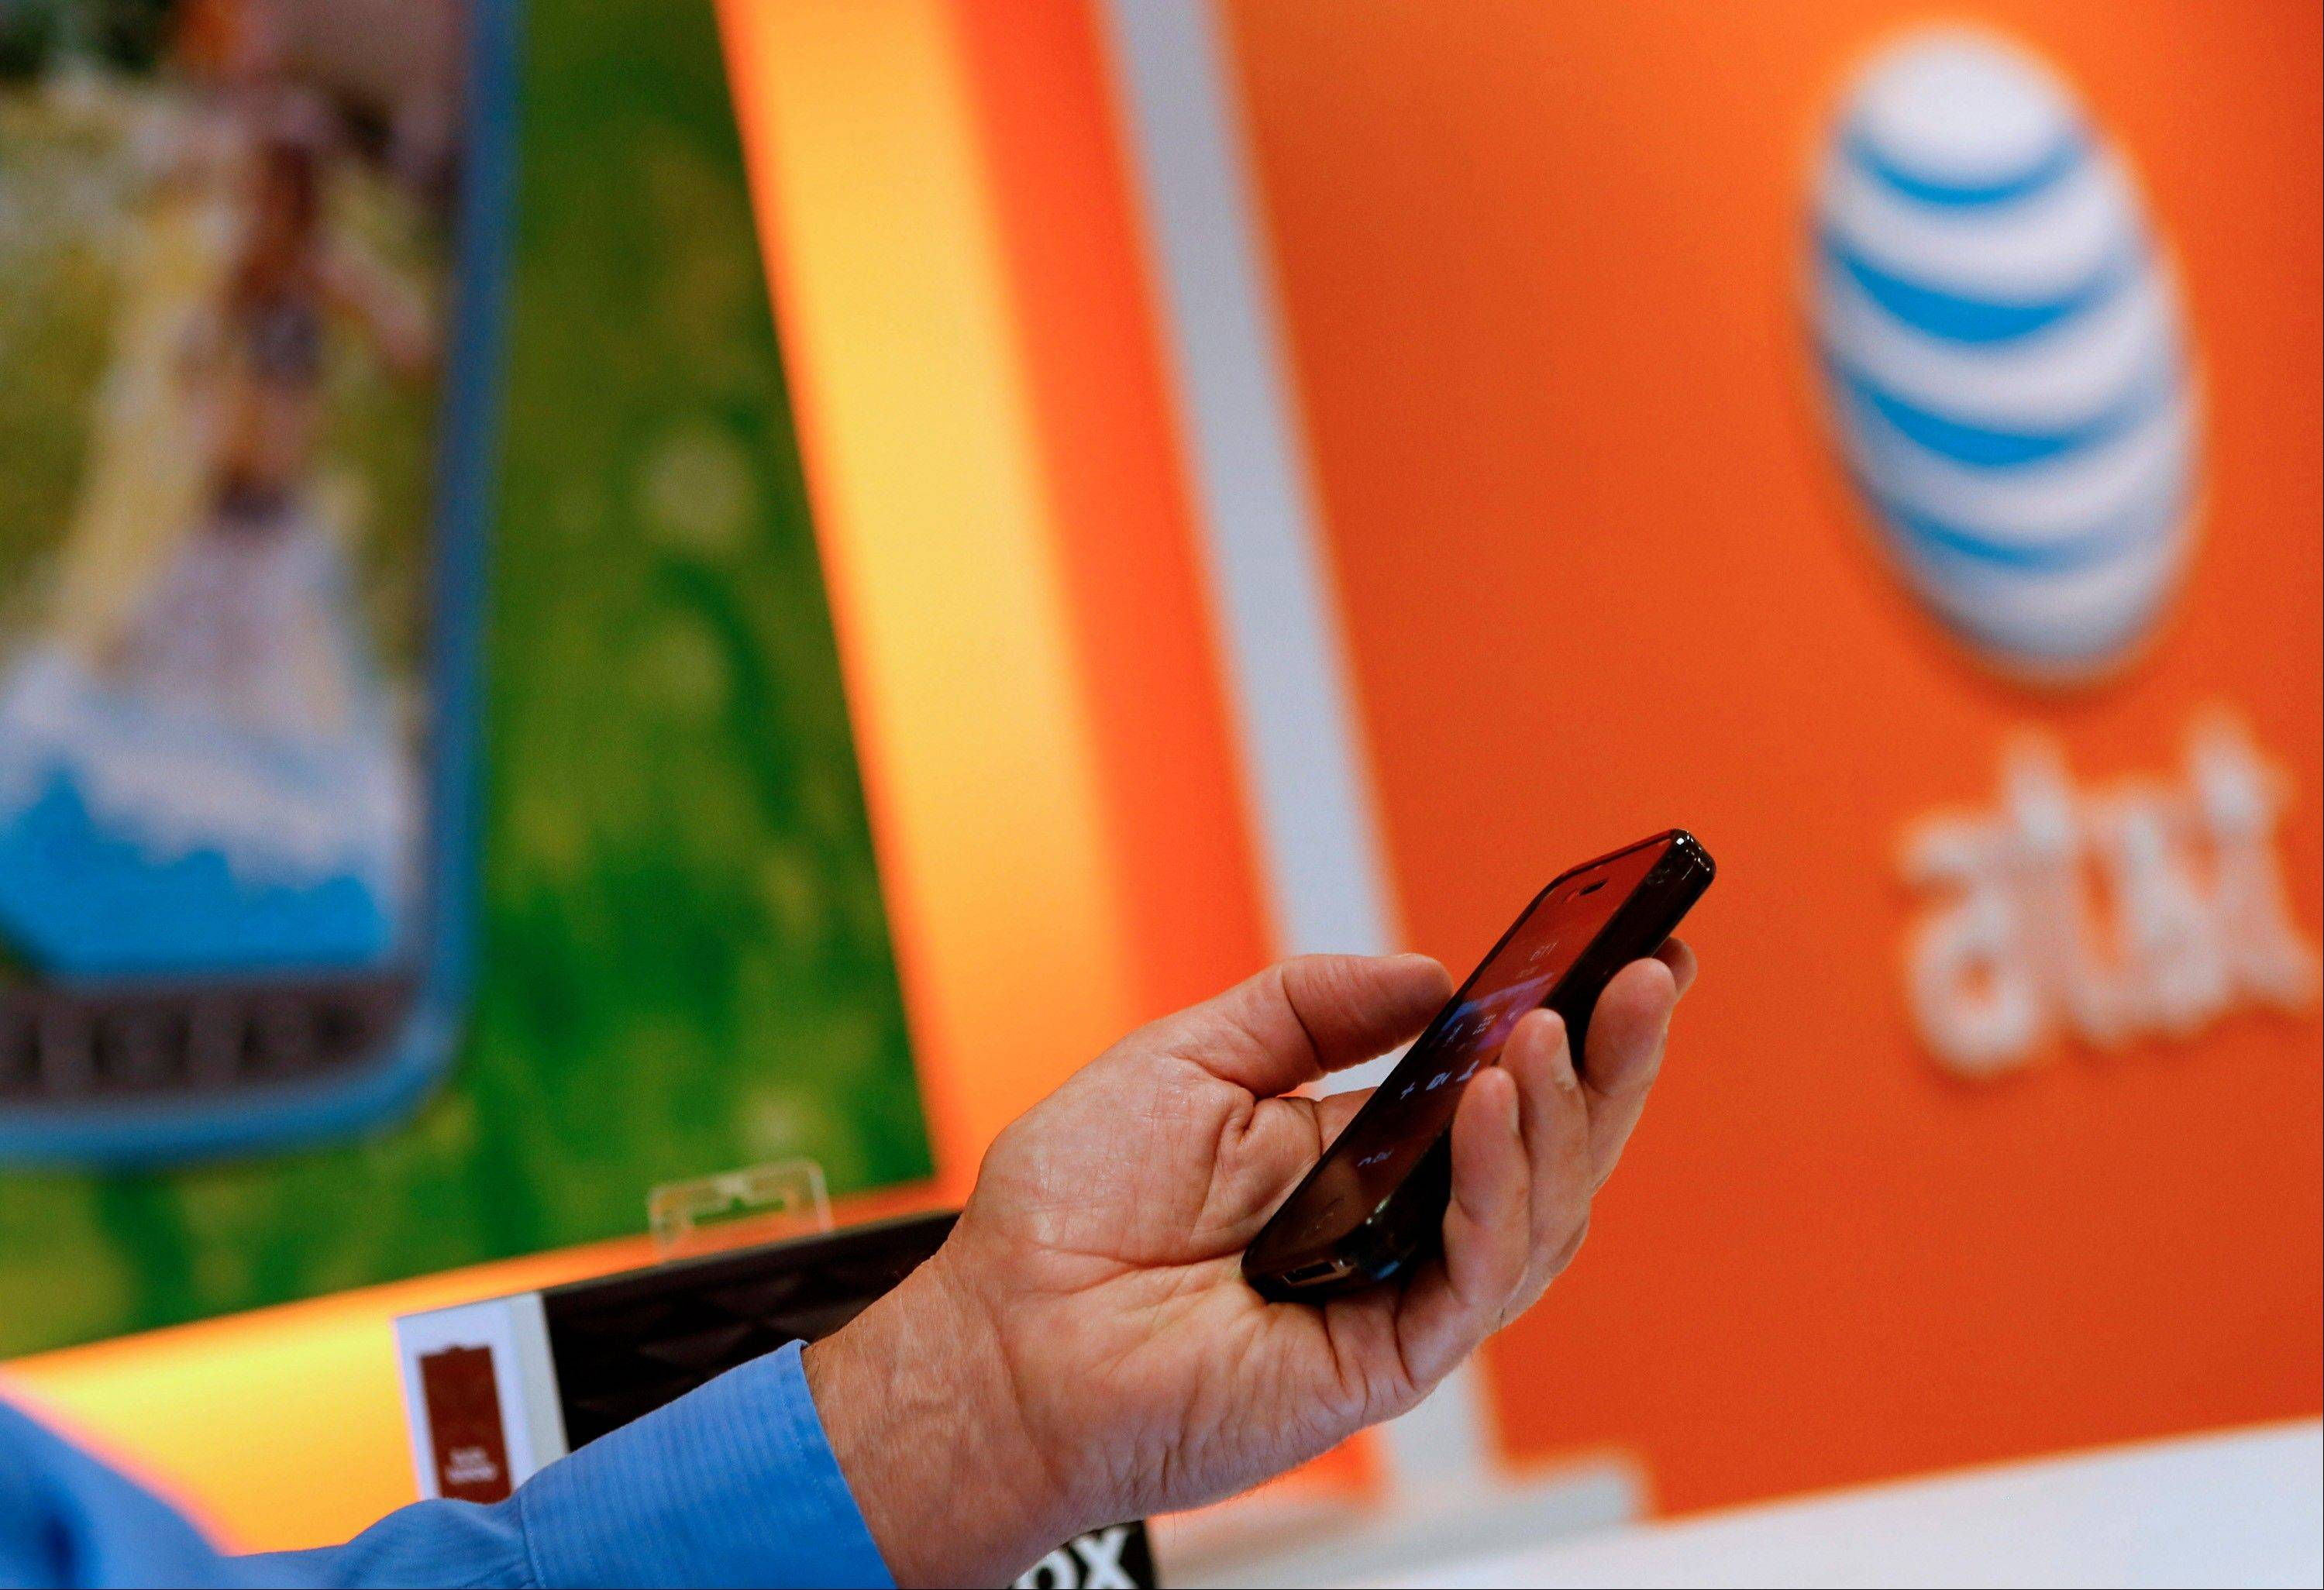 AT&T is the first major cellphone company to create a comprehensive service for sponsored wireless access in the U.S. The move is likely to face considerable opposition from public-interest groups that fear the service could discourage consumers from exploring new sites that can�t afford to pay communications carriers for traffic.